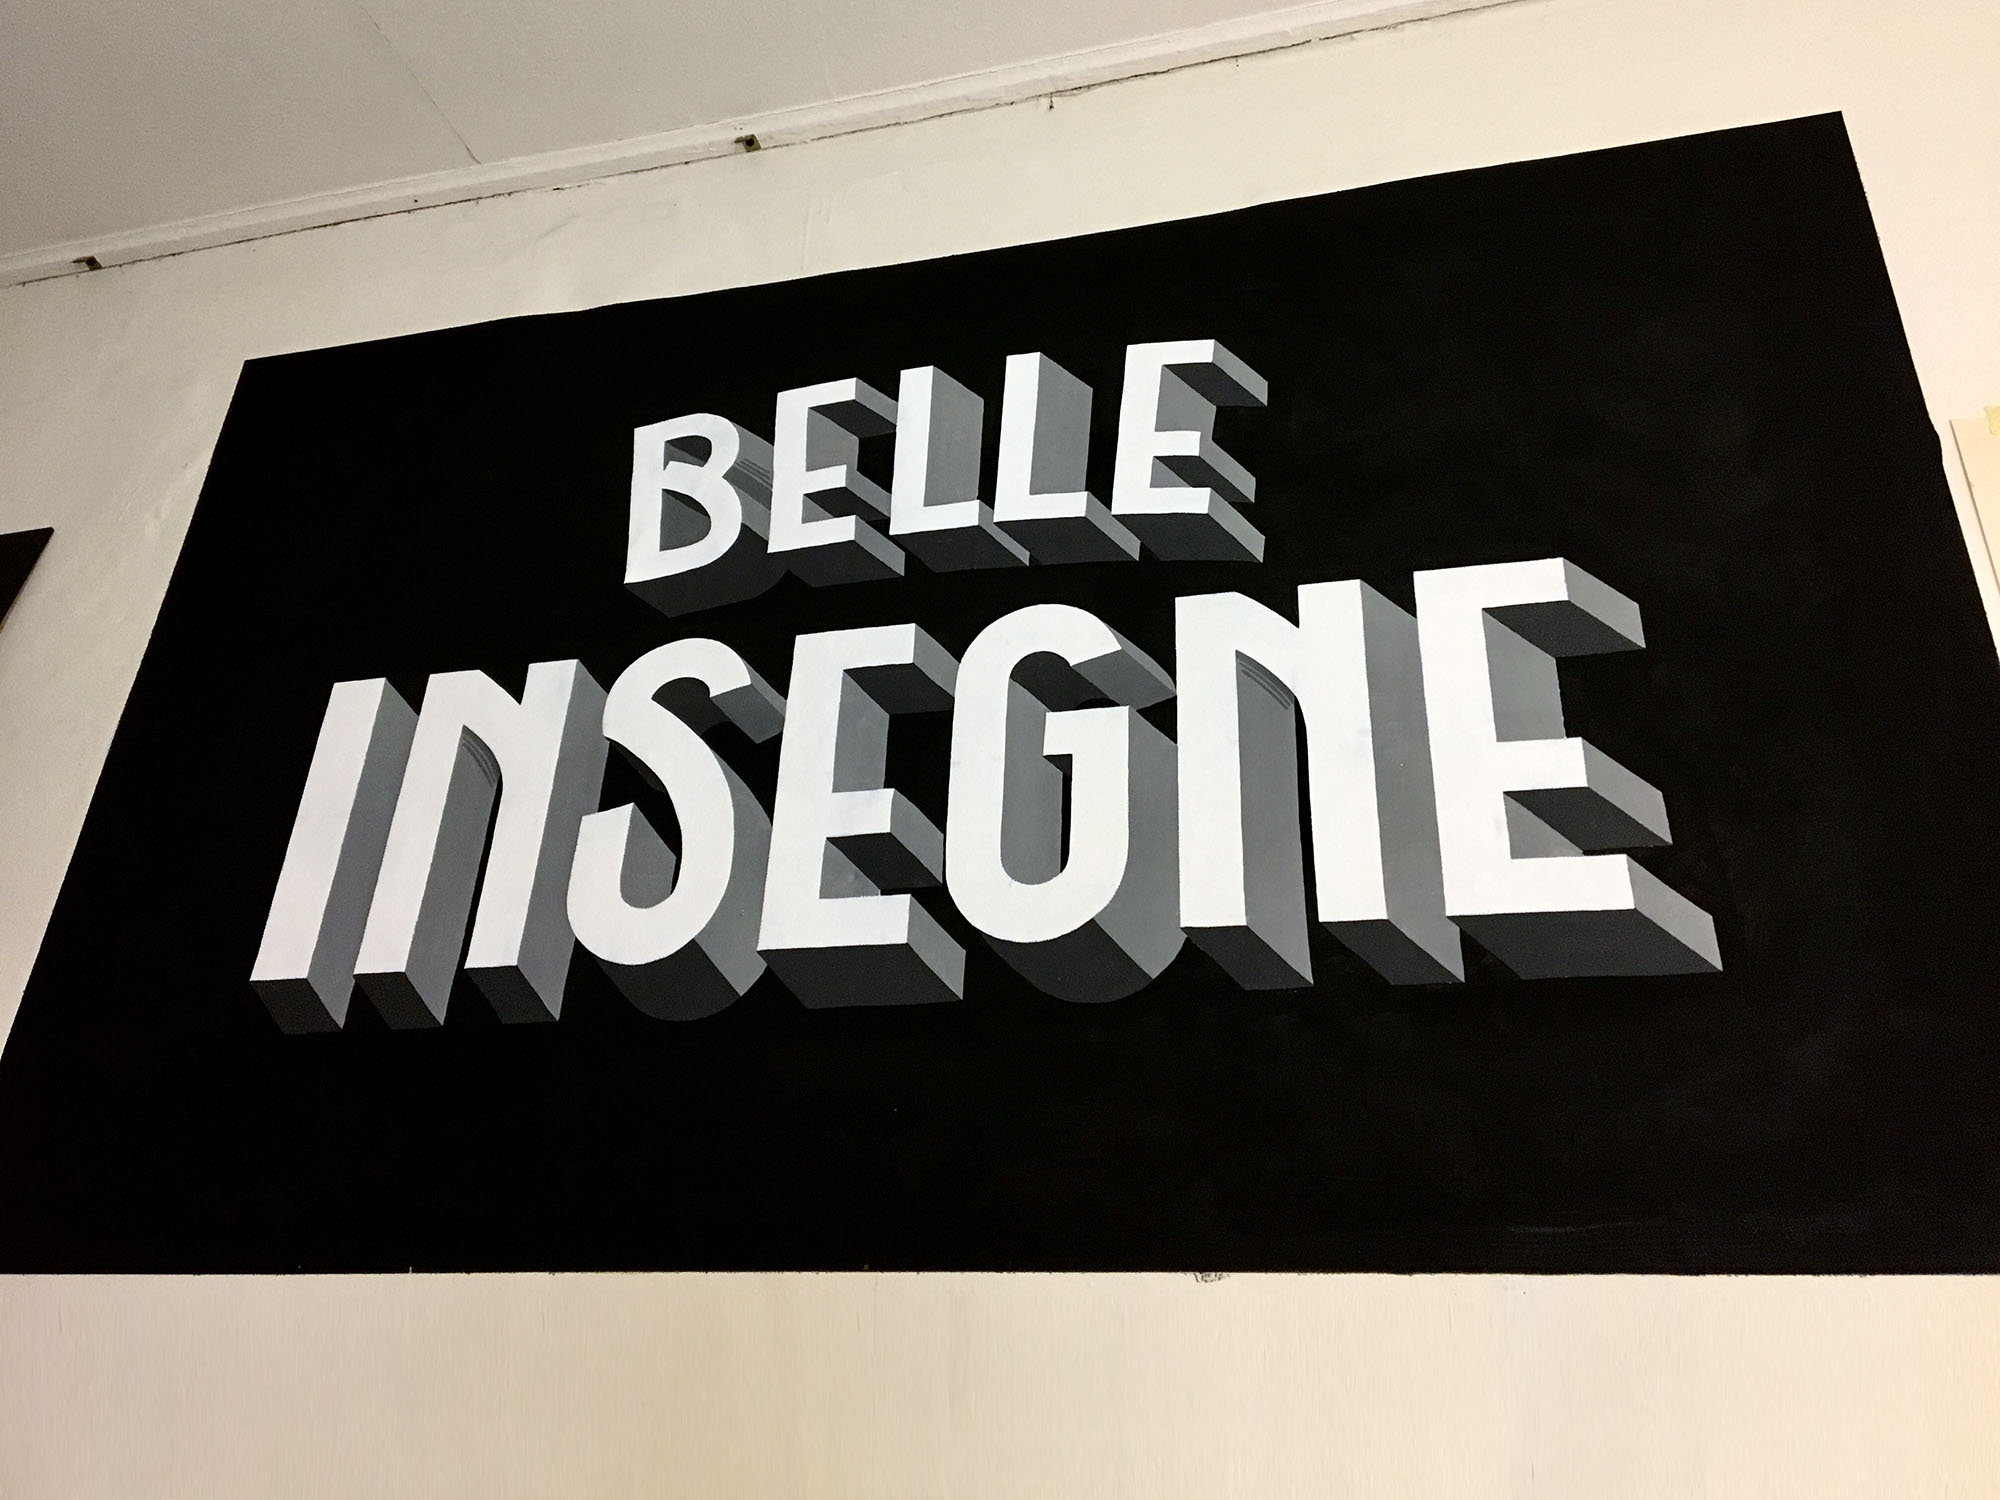 Belle Insegne